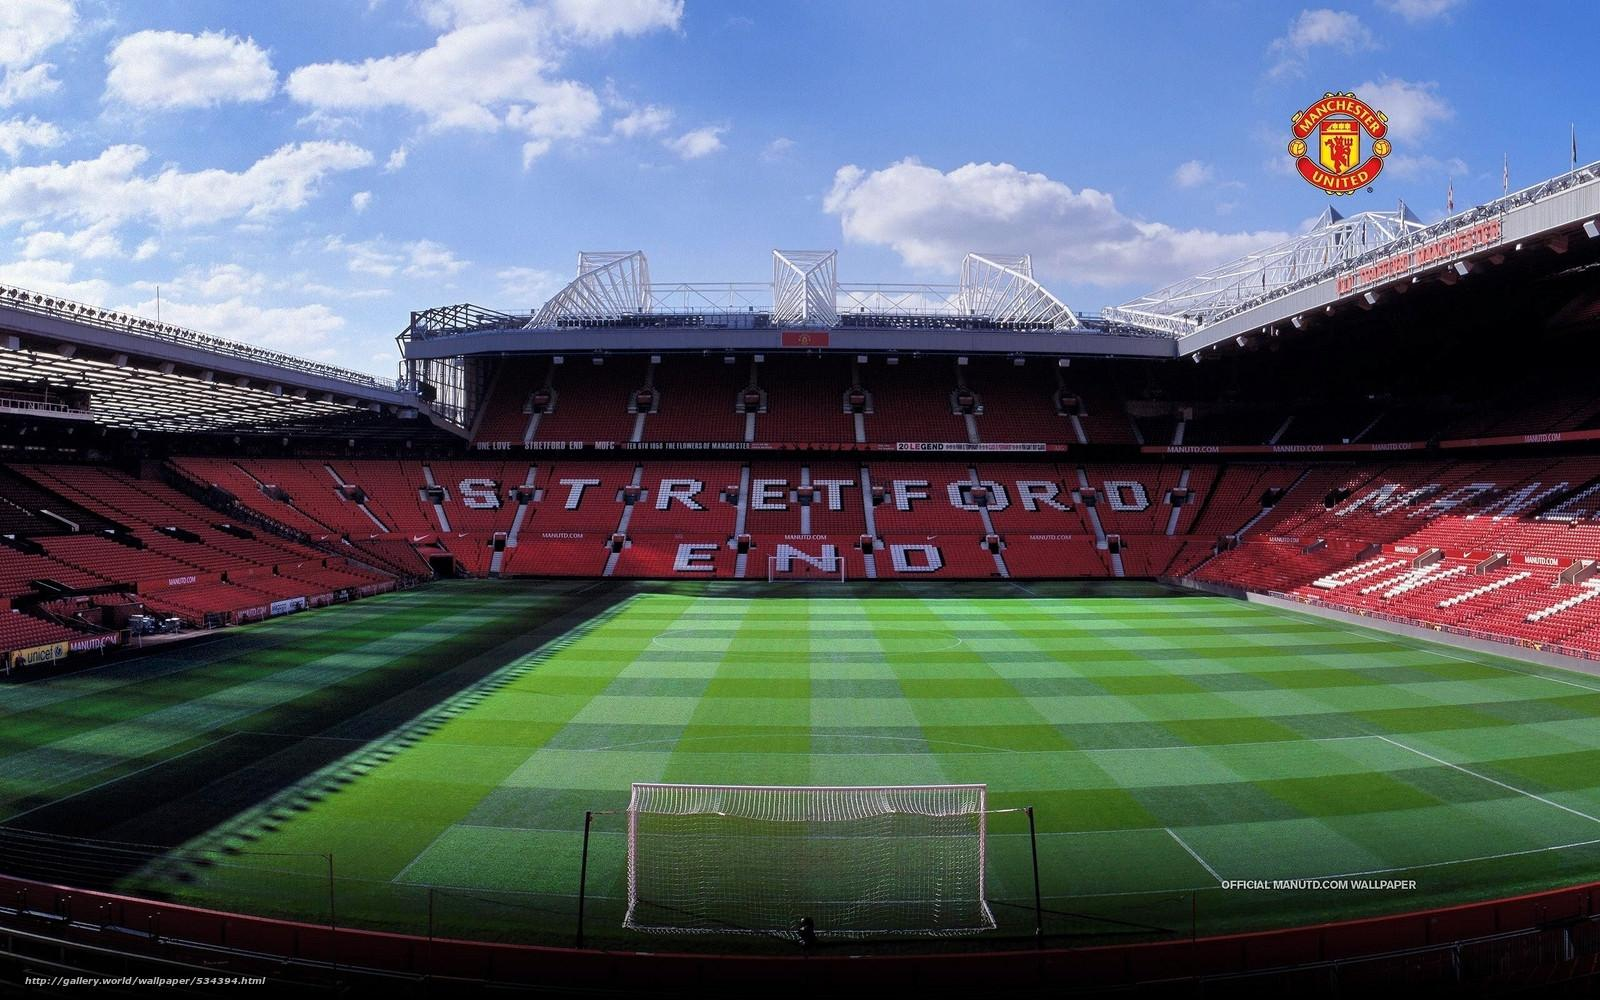 Football Stadium Old Trafford Hd Wallpaper Wallpaper Cave